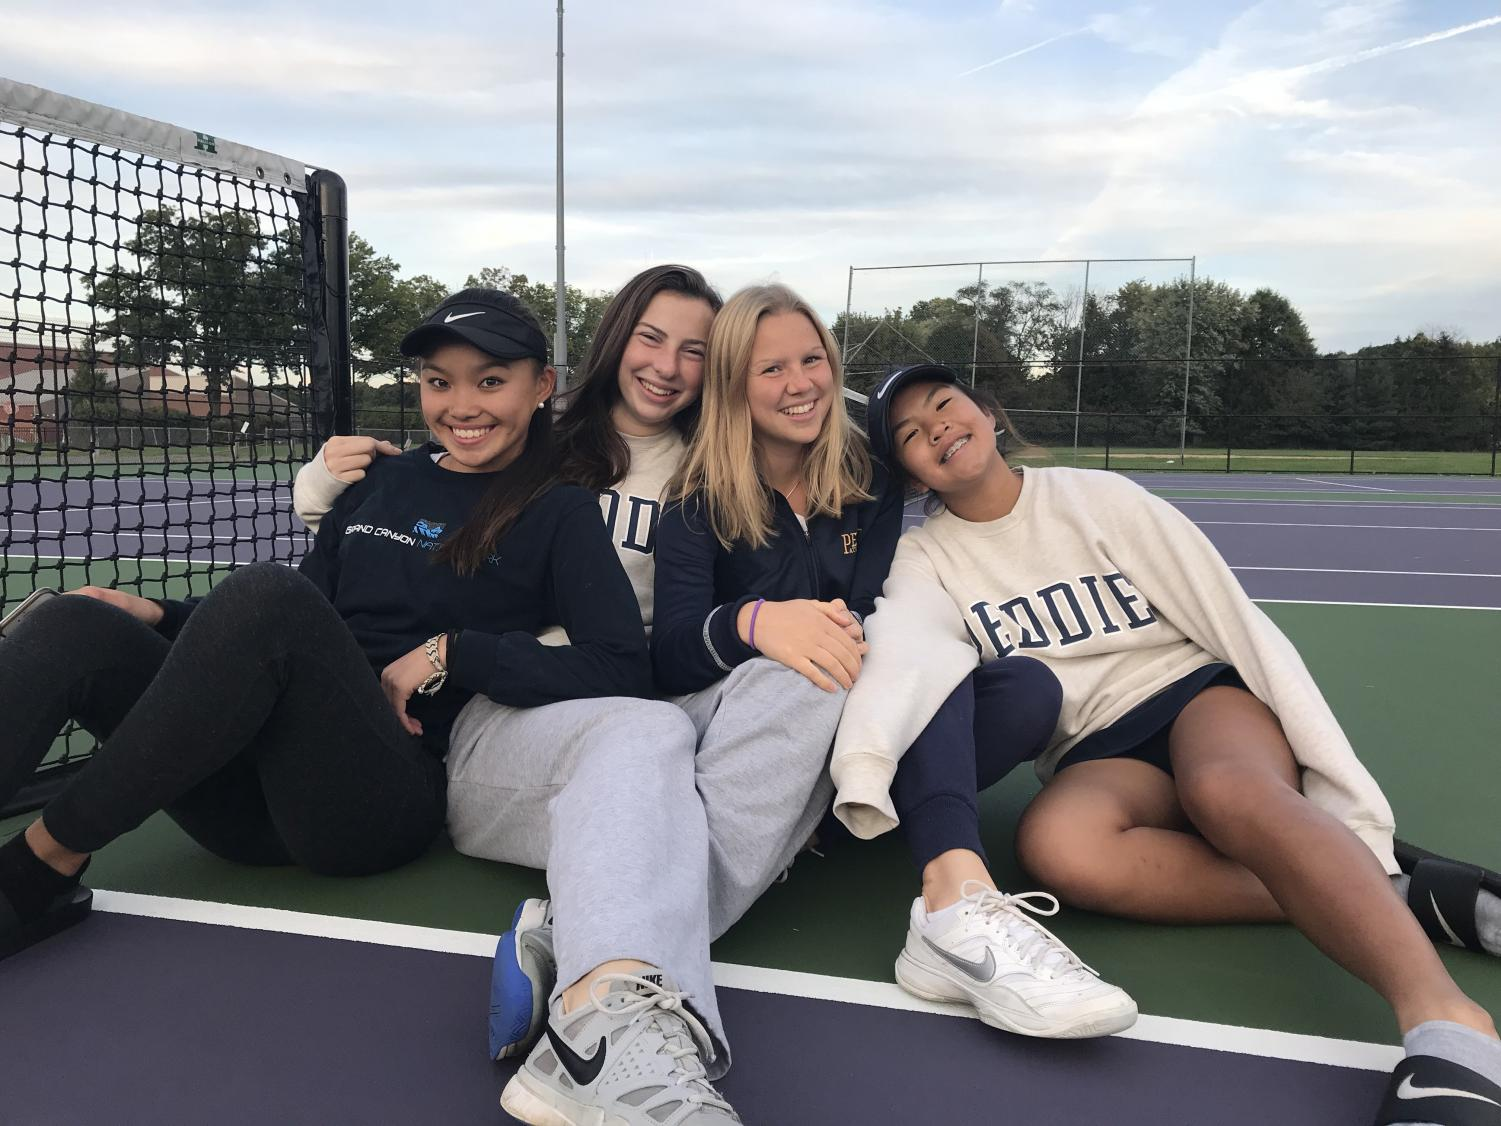 From left to right: Kathryn Fang '22, Bateman Solms '20, Anna Möller '20, Emme Pham '22.